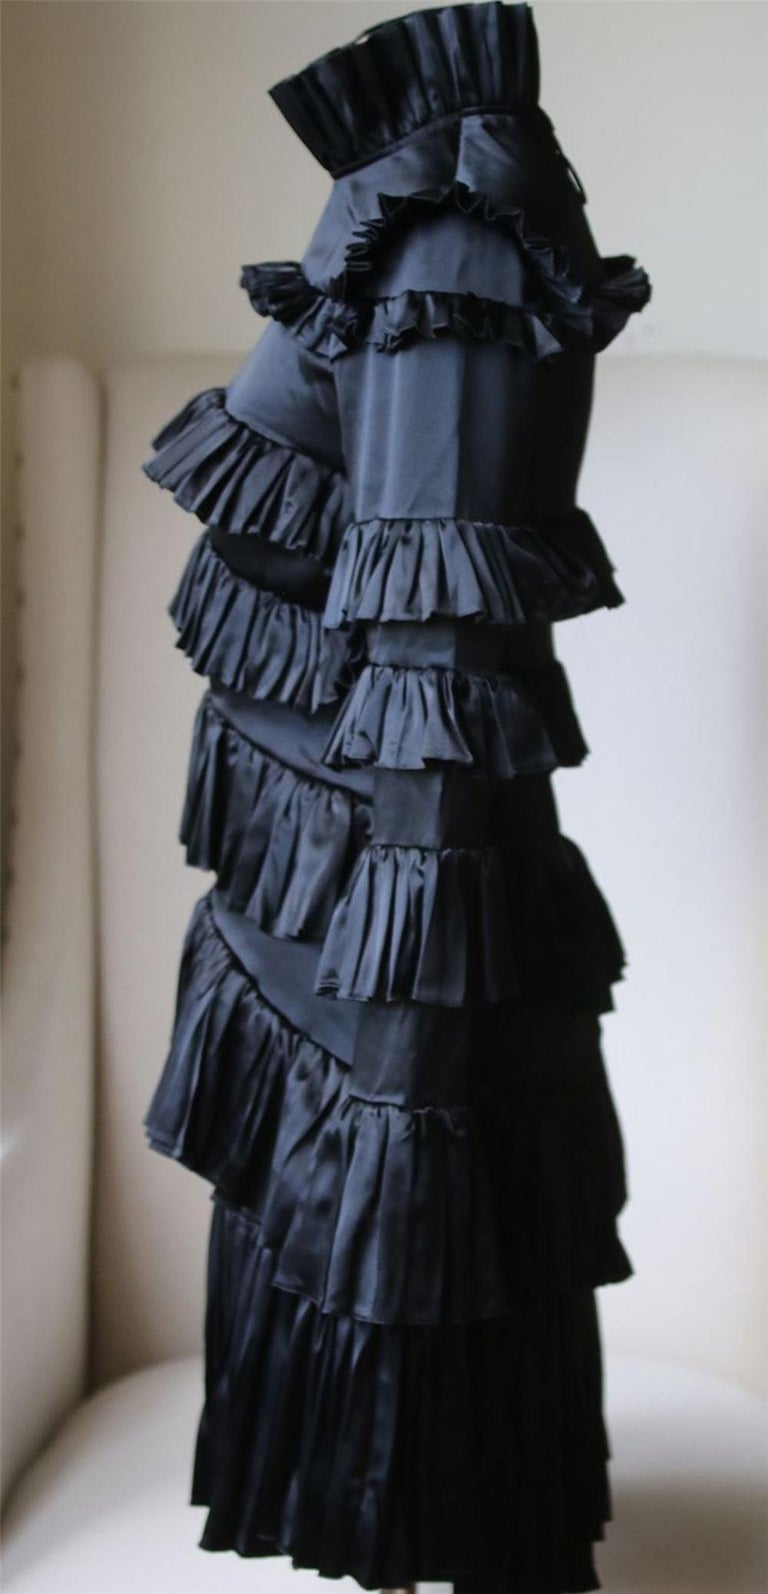 Black Off-White c/o Virgil Abloh Tiered Ruffled Mini Dress  For Sale